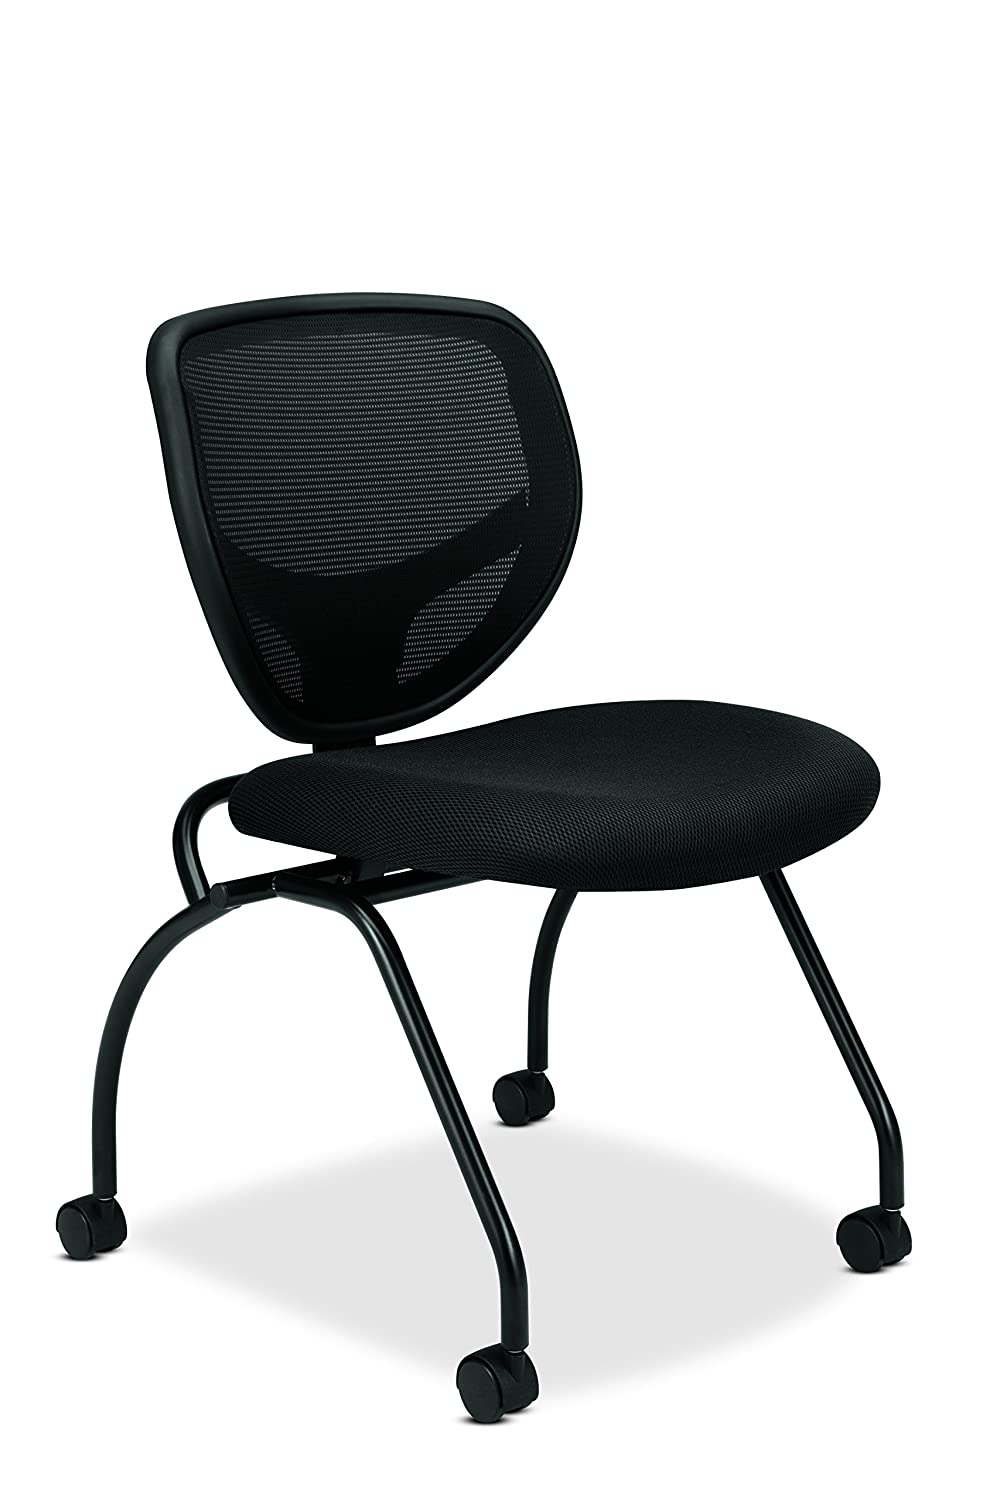 HON Guest Chair – Mesh Stacking Chairs and Folding Chairs Office Furniture, Armless, Black, Set of 2 VL302